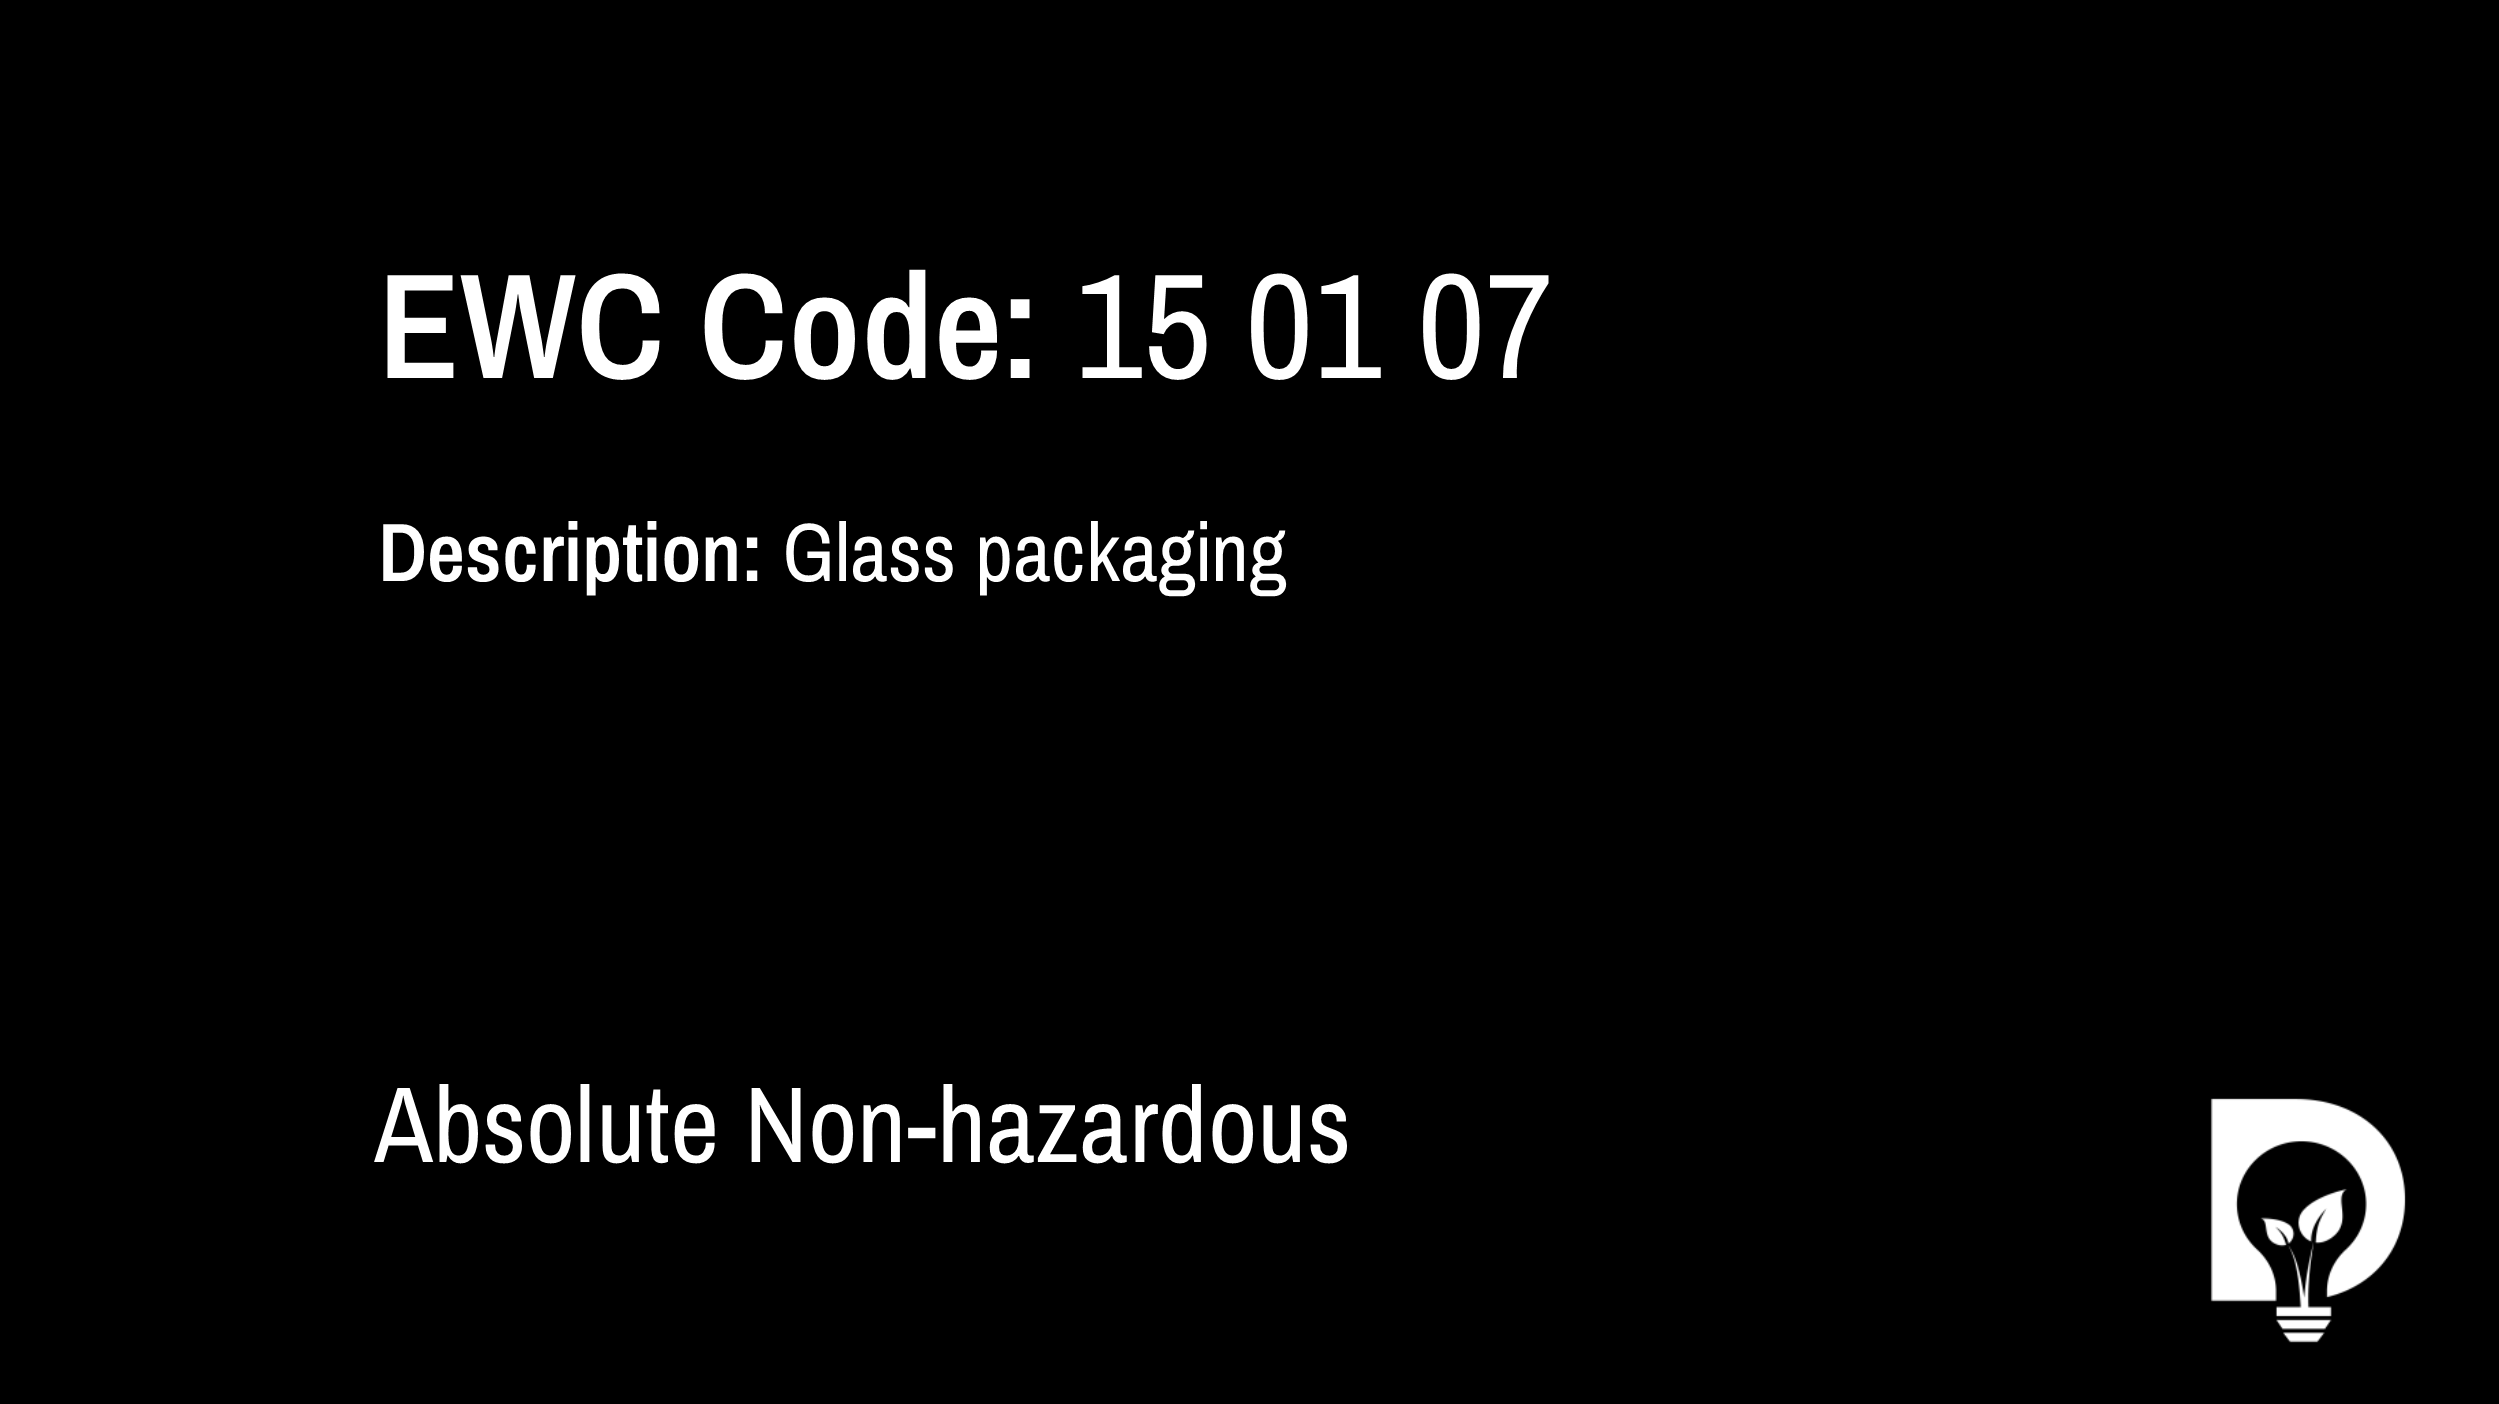 EWC Code: 15 01 07 - glass packaging. Type: Absolute Non-hazardous. Image by Dsposal